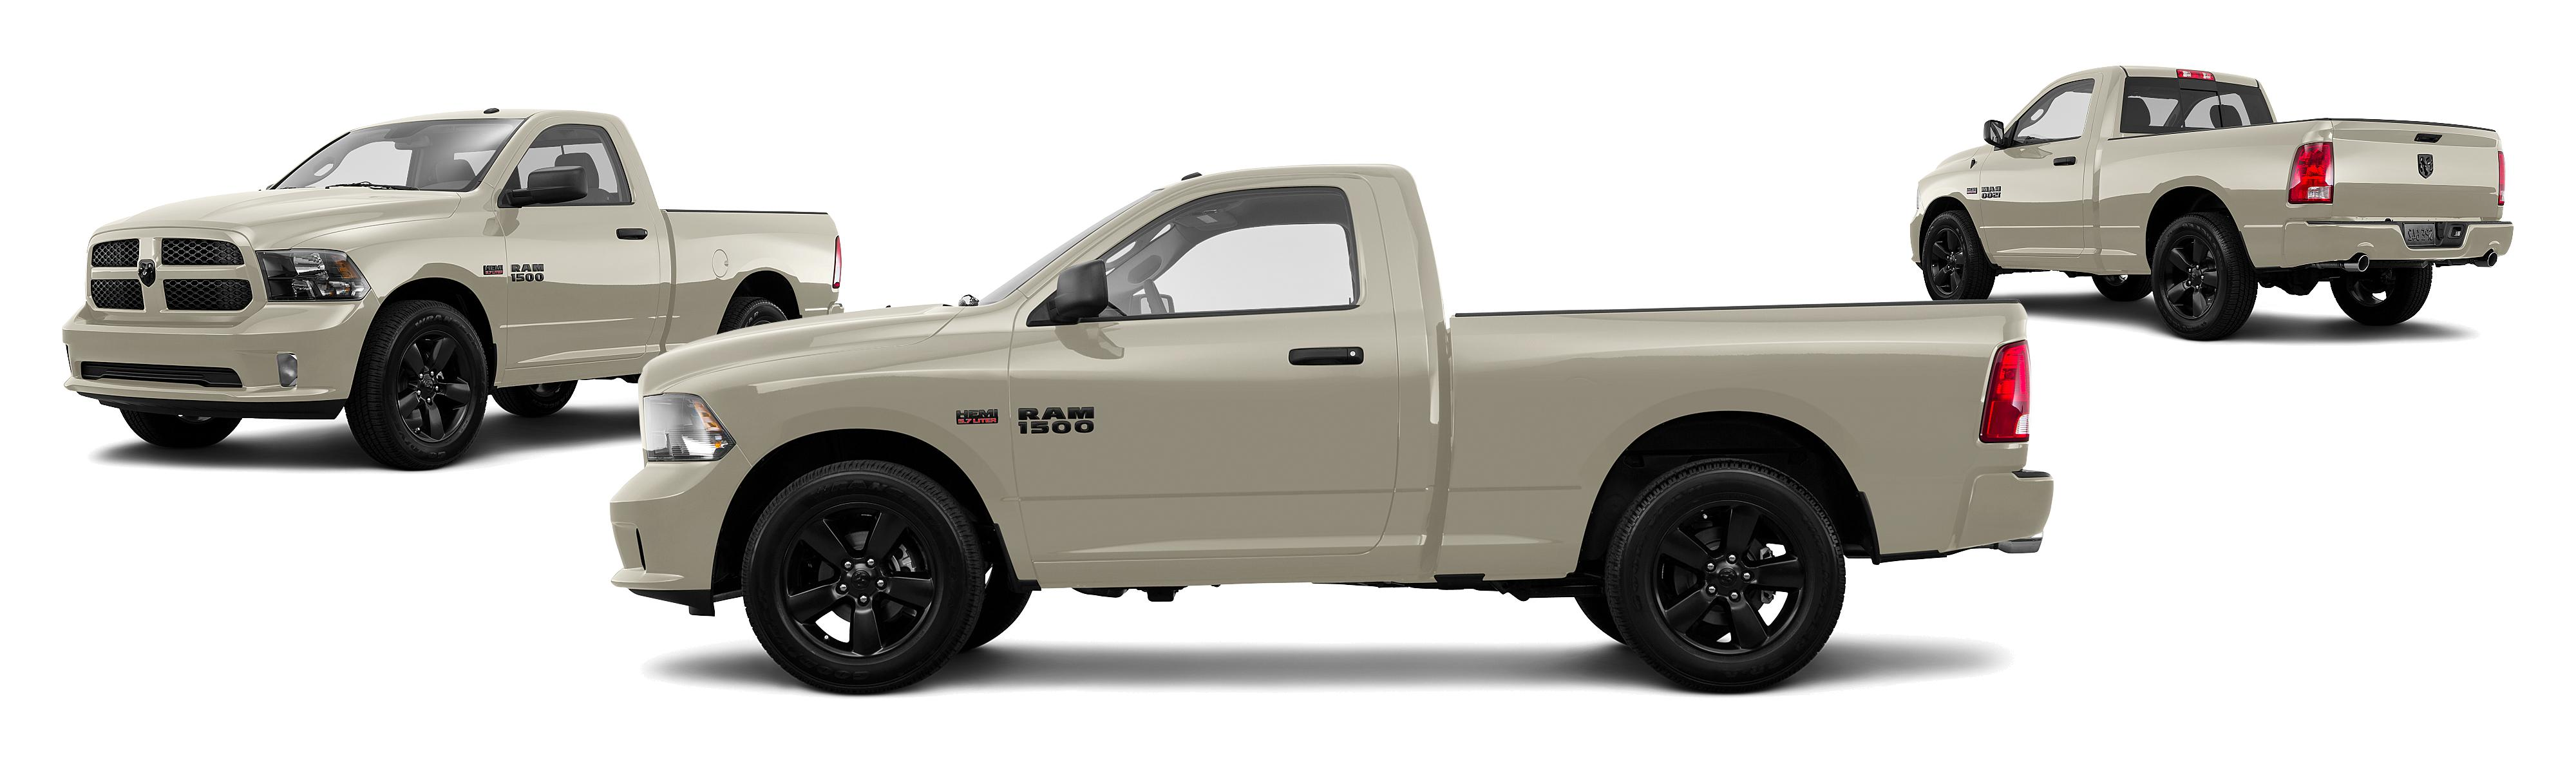 Toyota Tacoma 2015-2018 Service Manual: Security Indicator Light Does not Blink